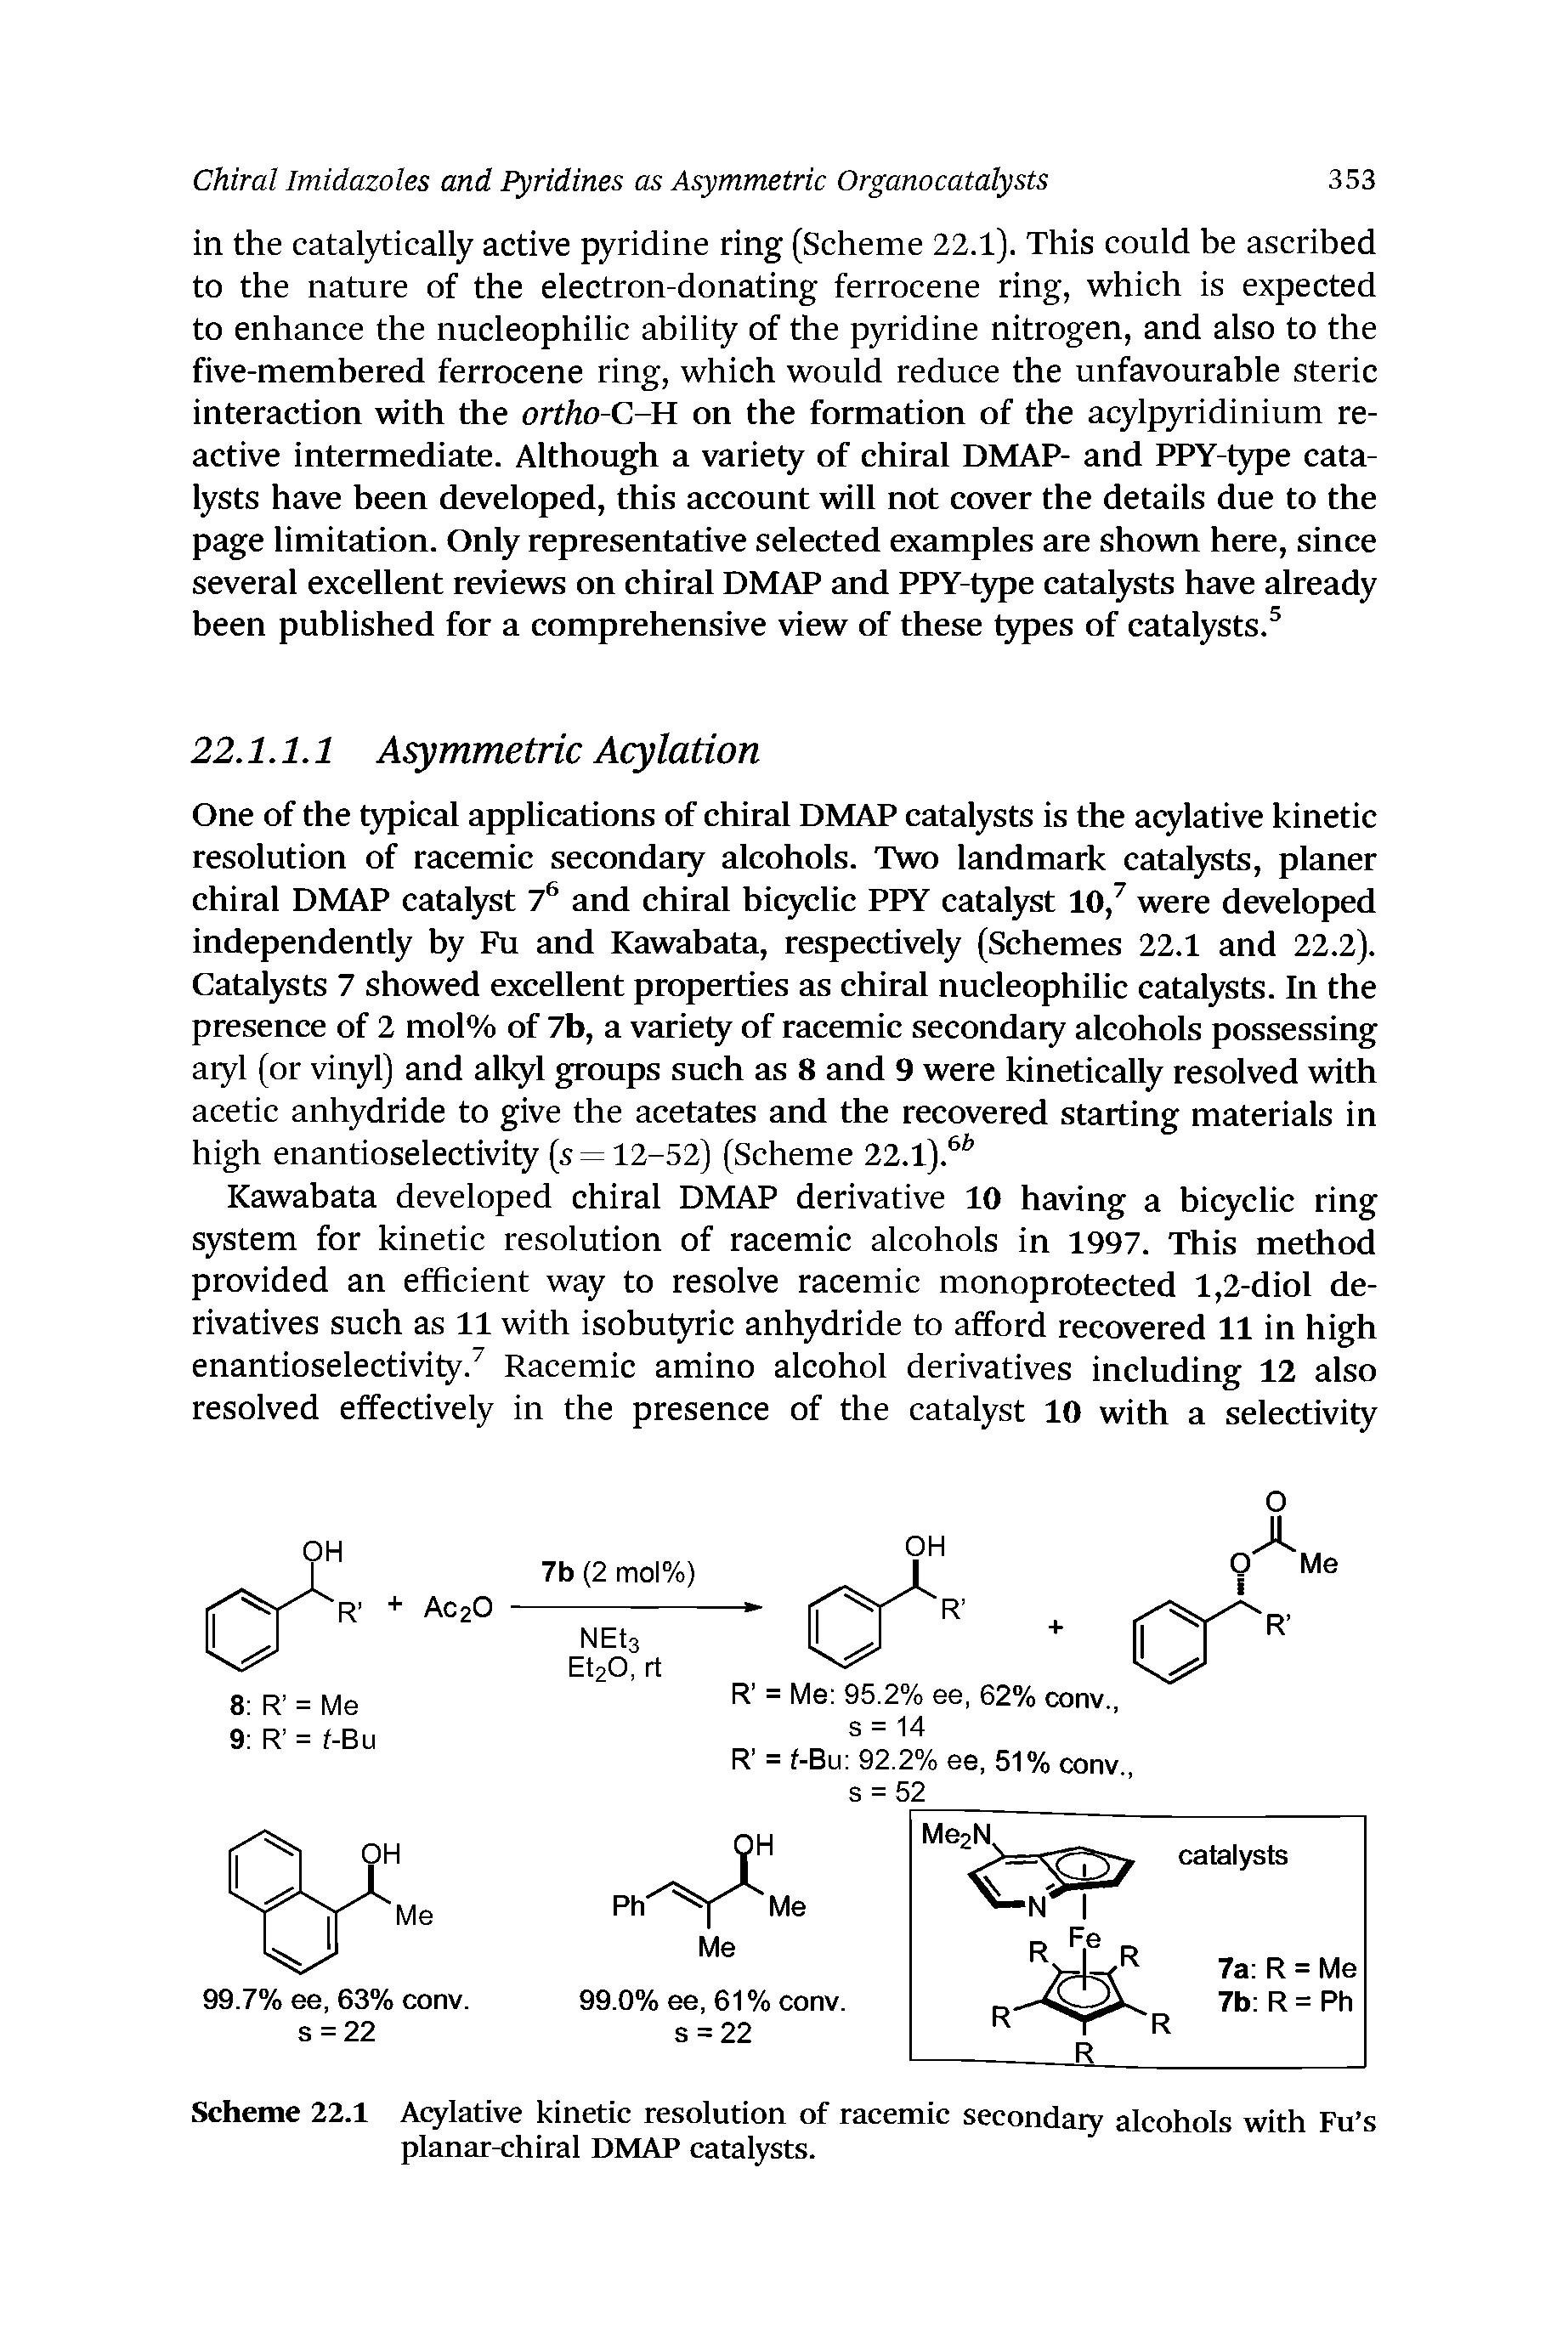 "Scheme 22.1 Acylative kinetic resolution of racemic <a href=""/info/secondaiy_alcohols"">secondaiy alcohols</a> with Fu s <a href=""/info/planar_chiral_dmap"">planar-chiral DMAP</a> catalysts."